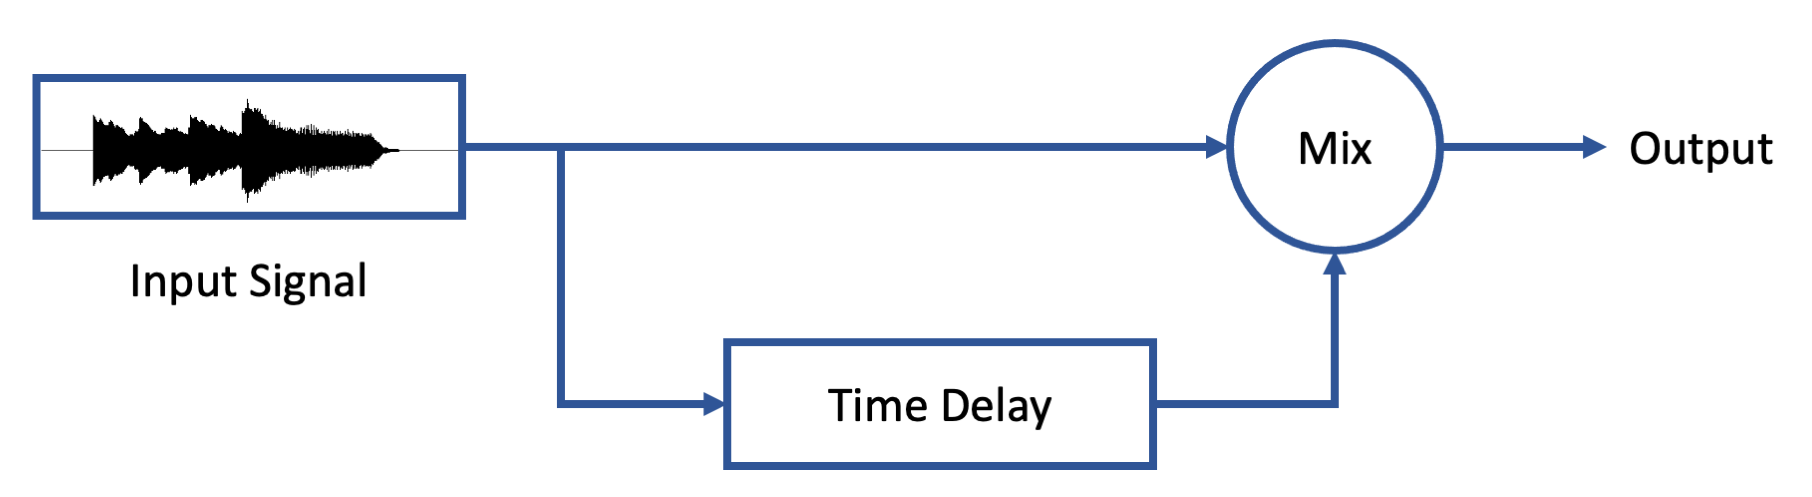 Figure 14.4. Time delay and summation (mixing) of identical signals, caused by acoustic, electronic, or computer processes, resulting in phase incoherence and comb filtering in the output